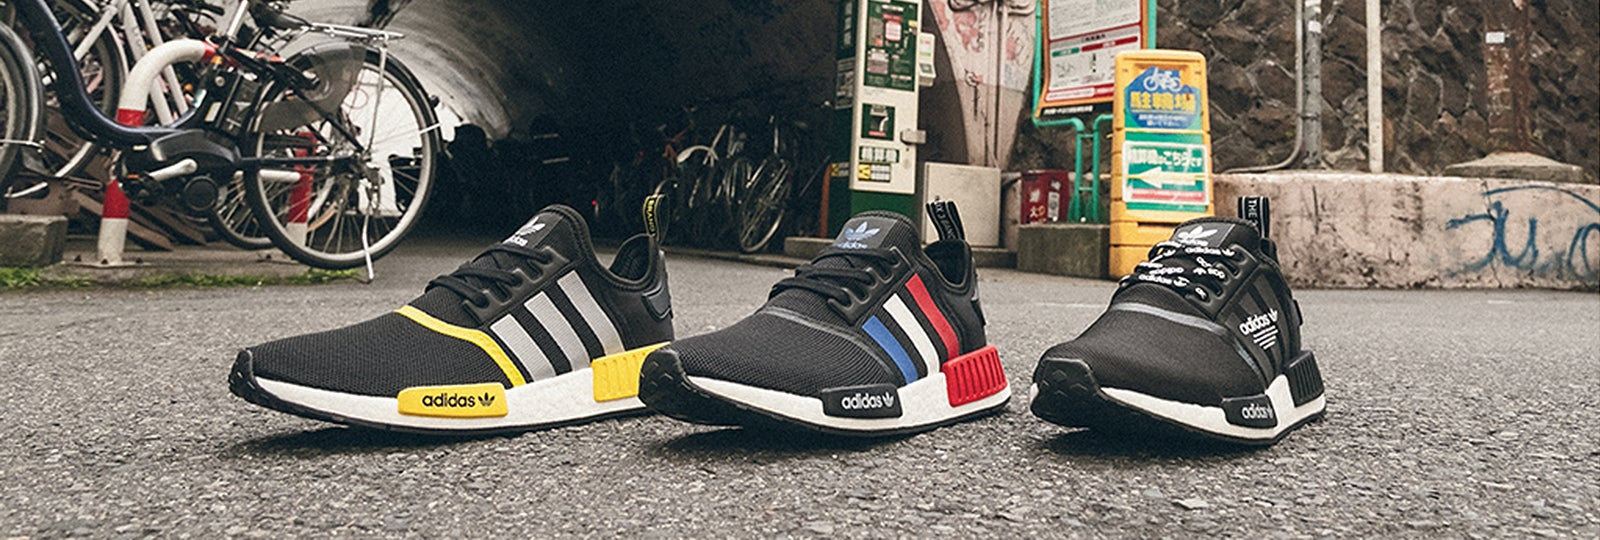 0d2e3489668 Cop heritage design, Boost tech + bold colors in the latest from the Three  Stripes.